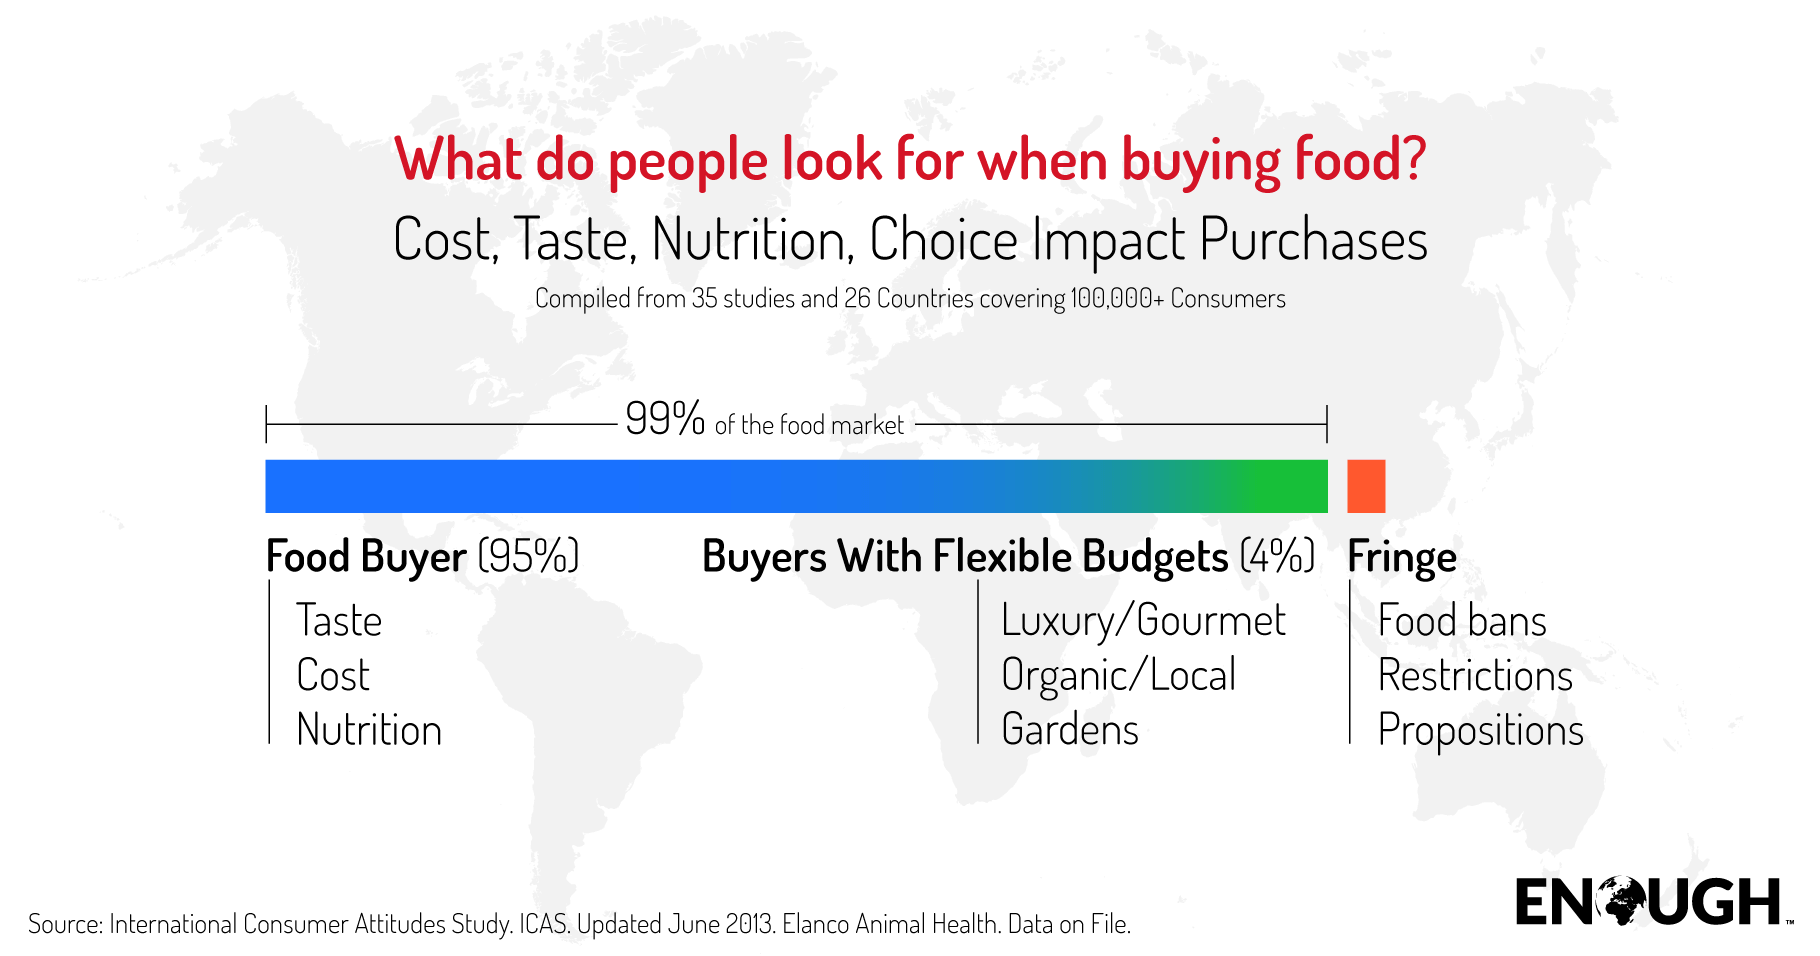 Consumers generally buy food based on taste, cost and nutrition.